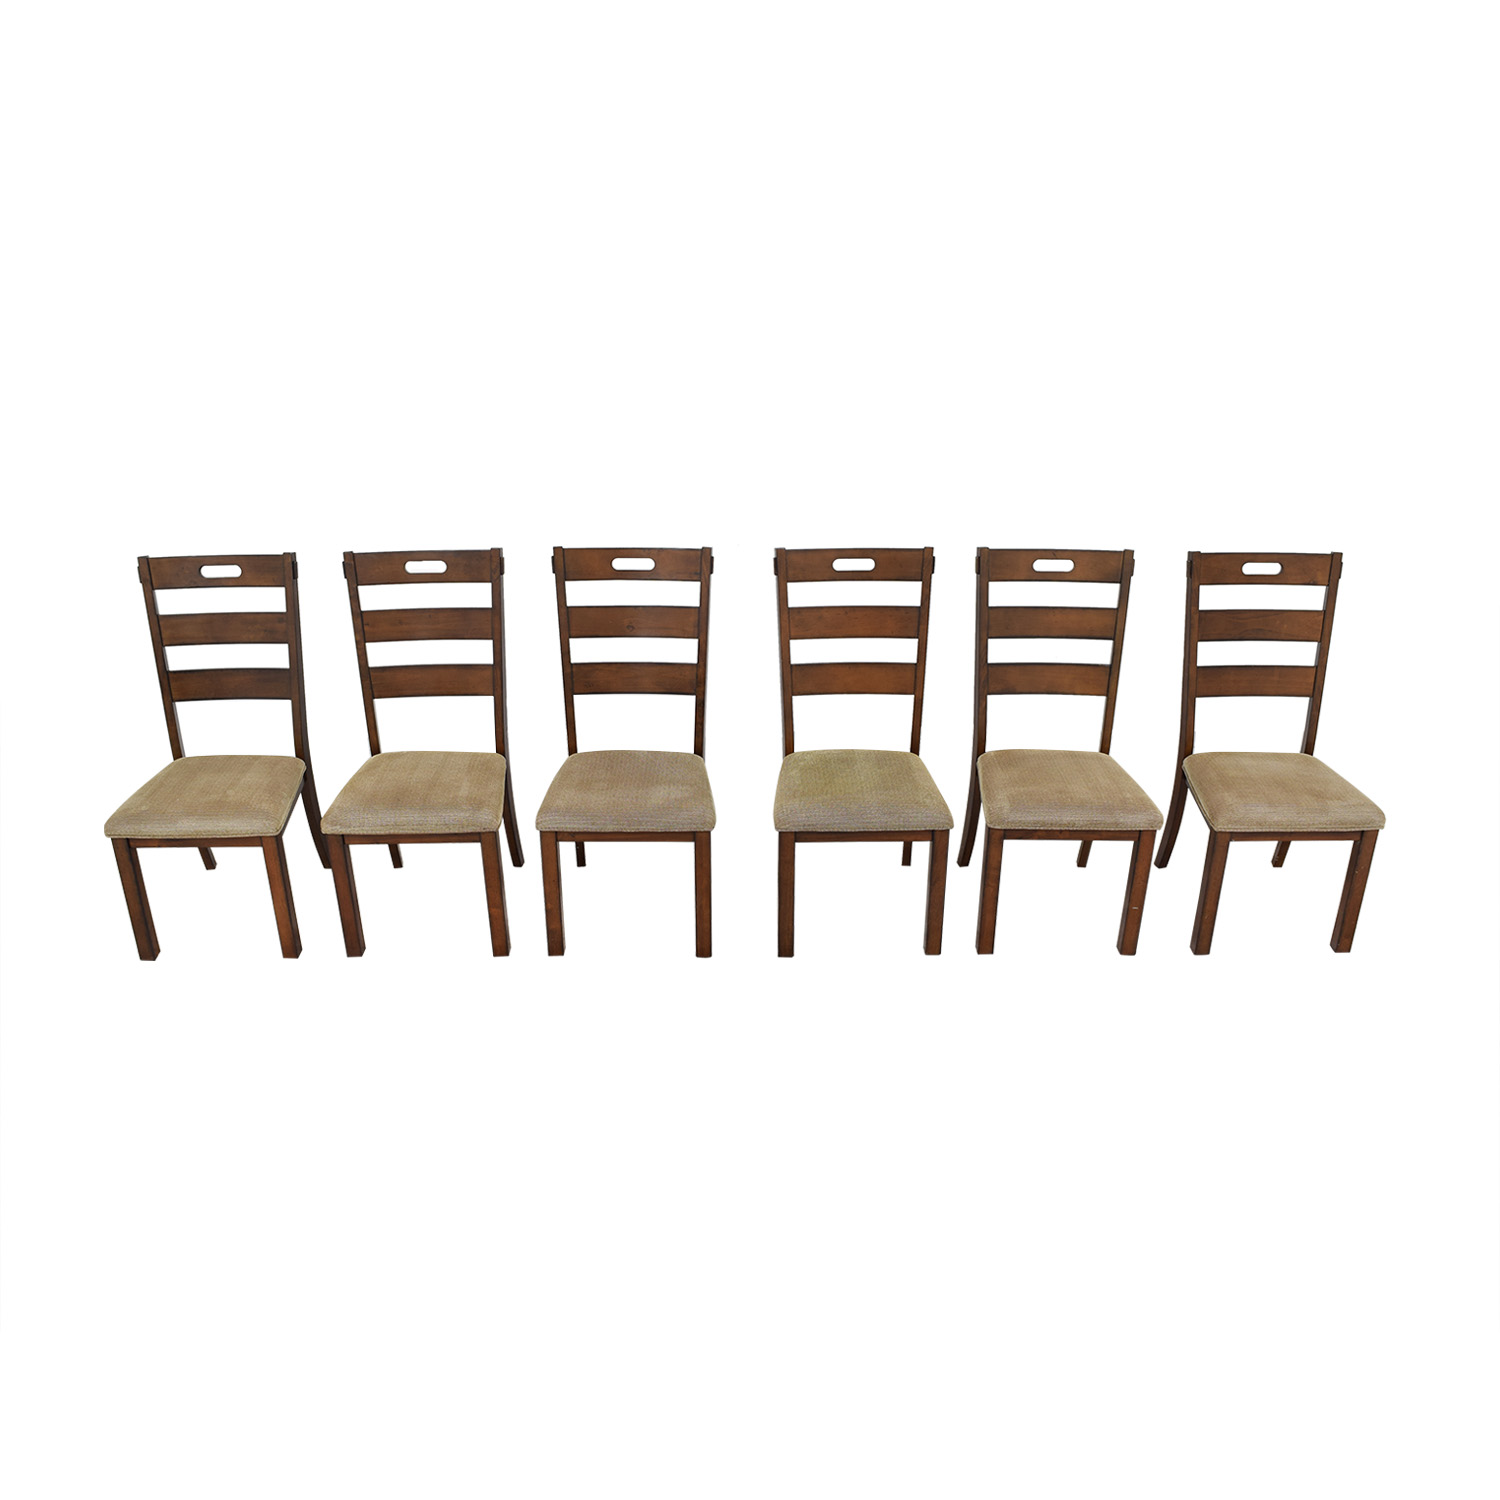 Wayfair Ladder Back Upholstered Dining Chairs sale